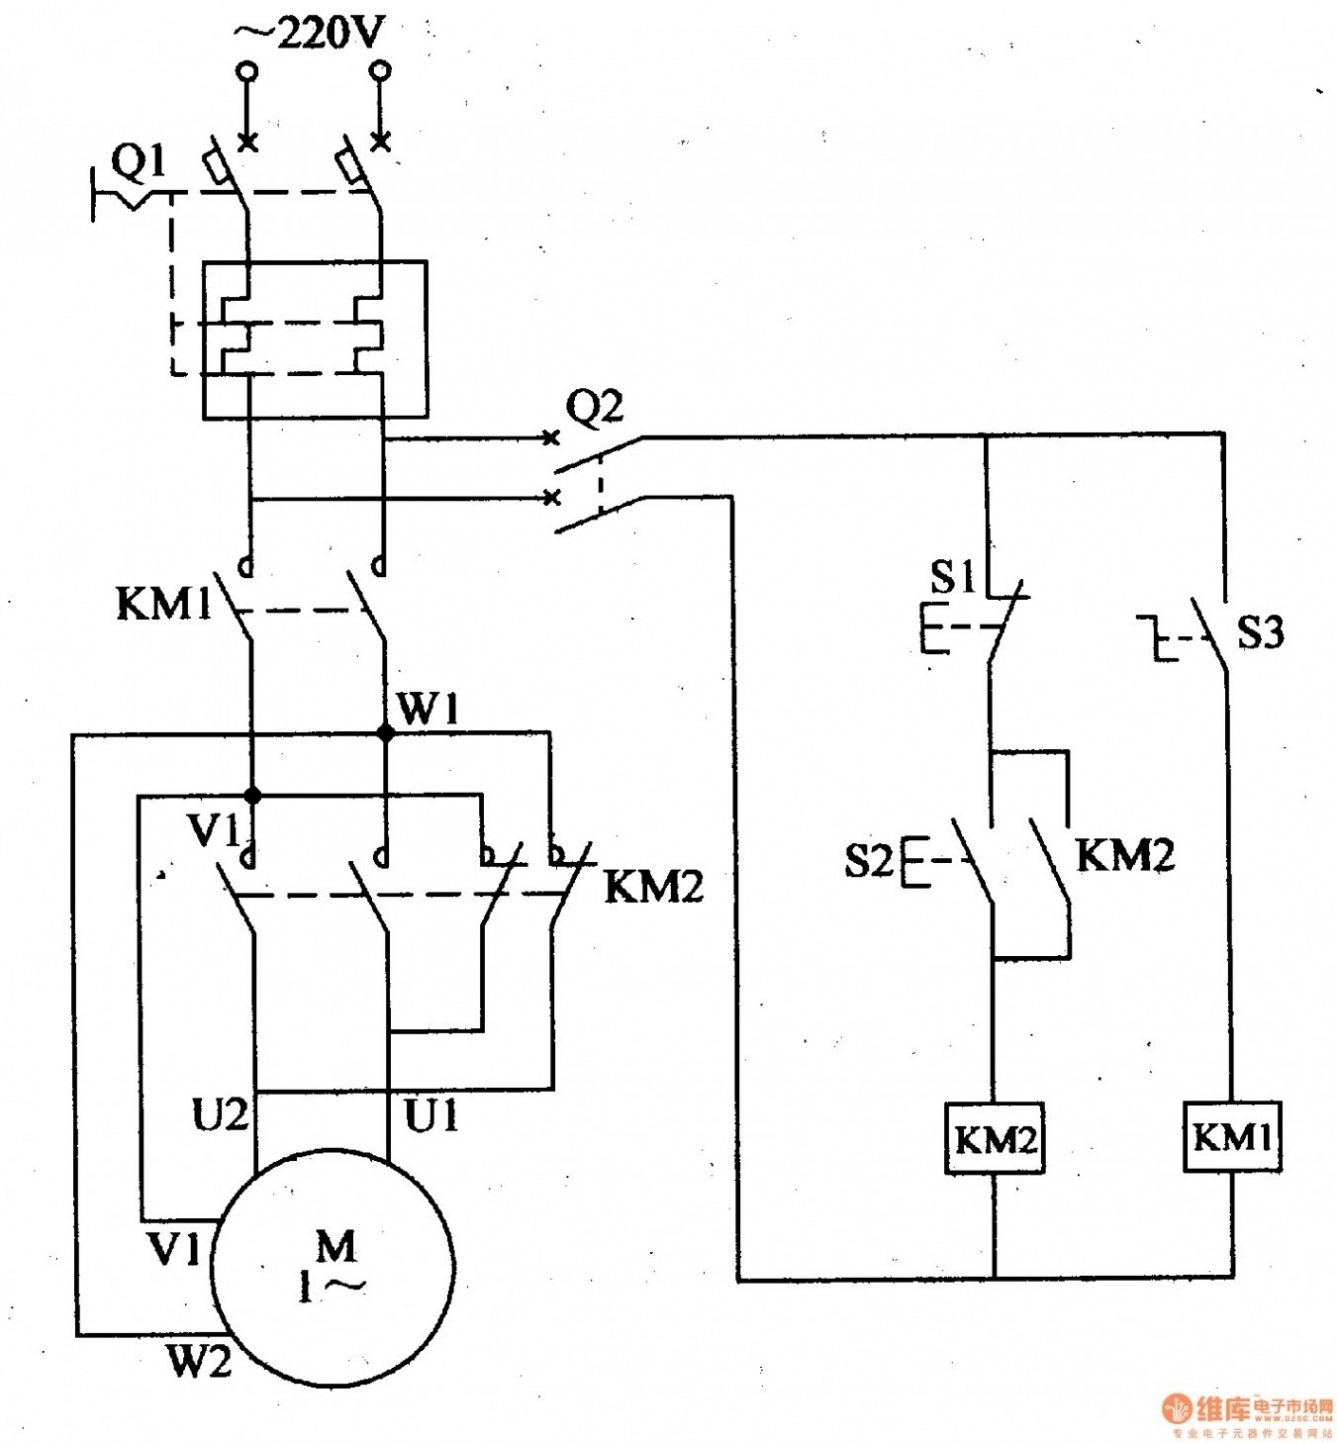 t1 jack wiring diagram